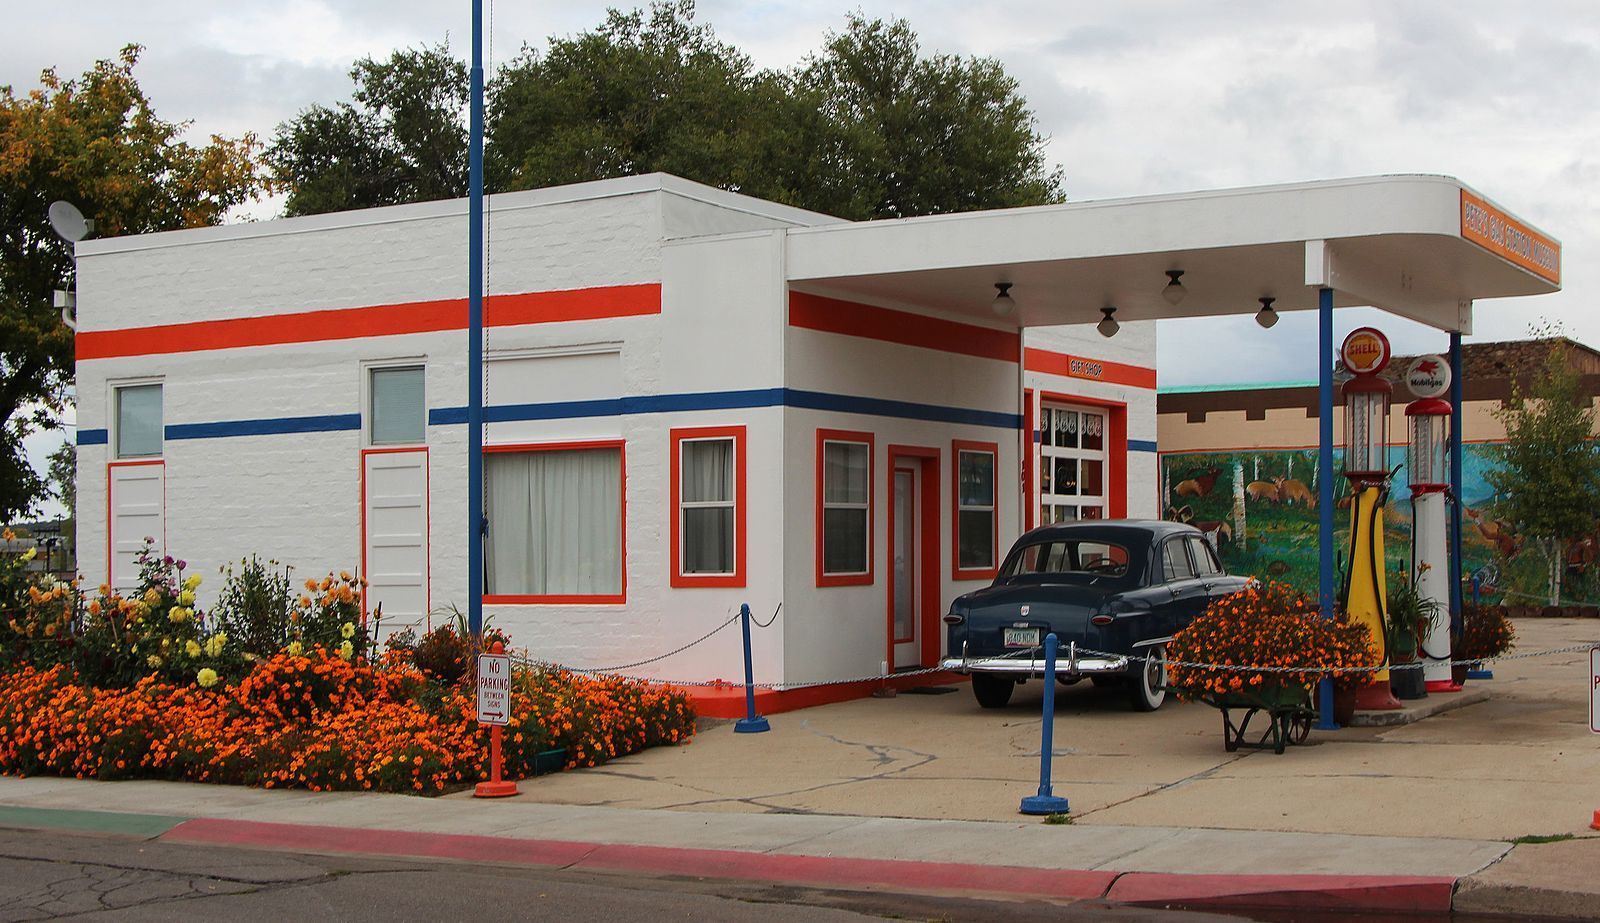 U.S. Convenience Store Brands with Cleanest Restrooms